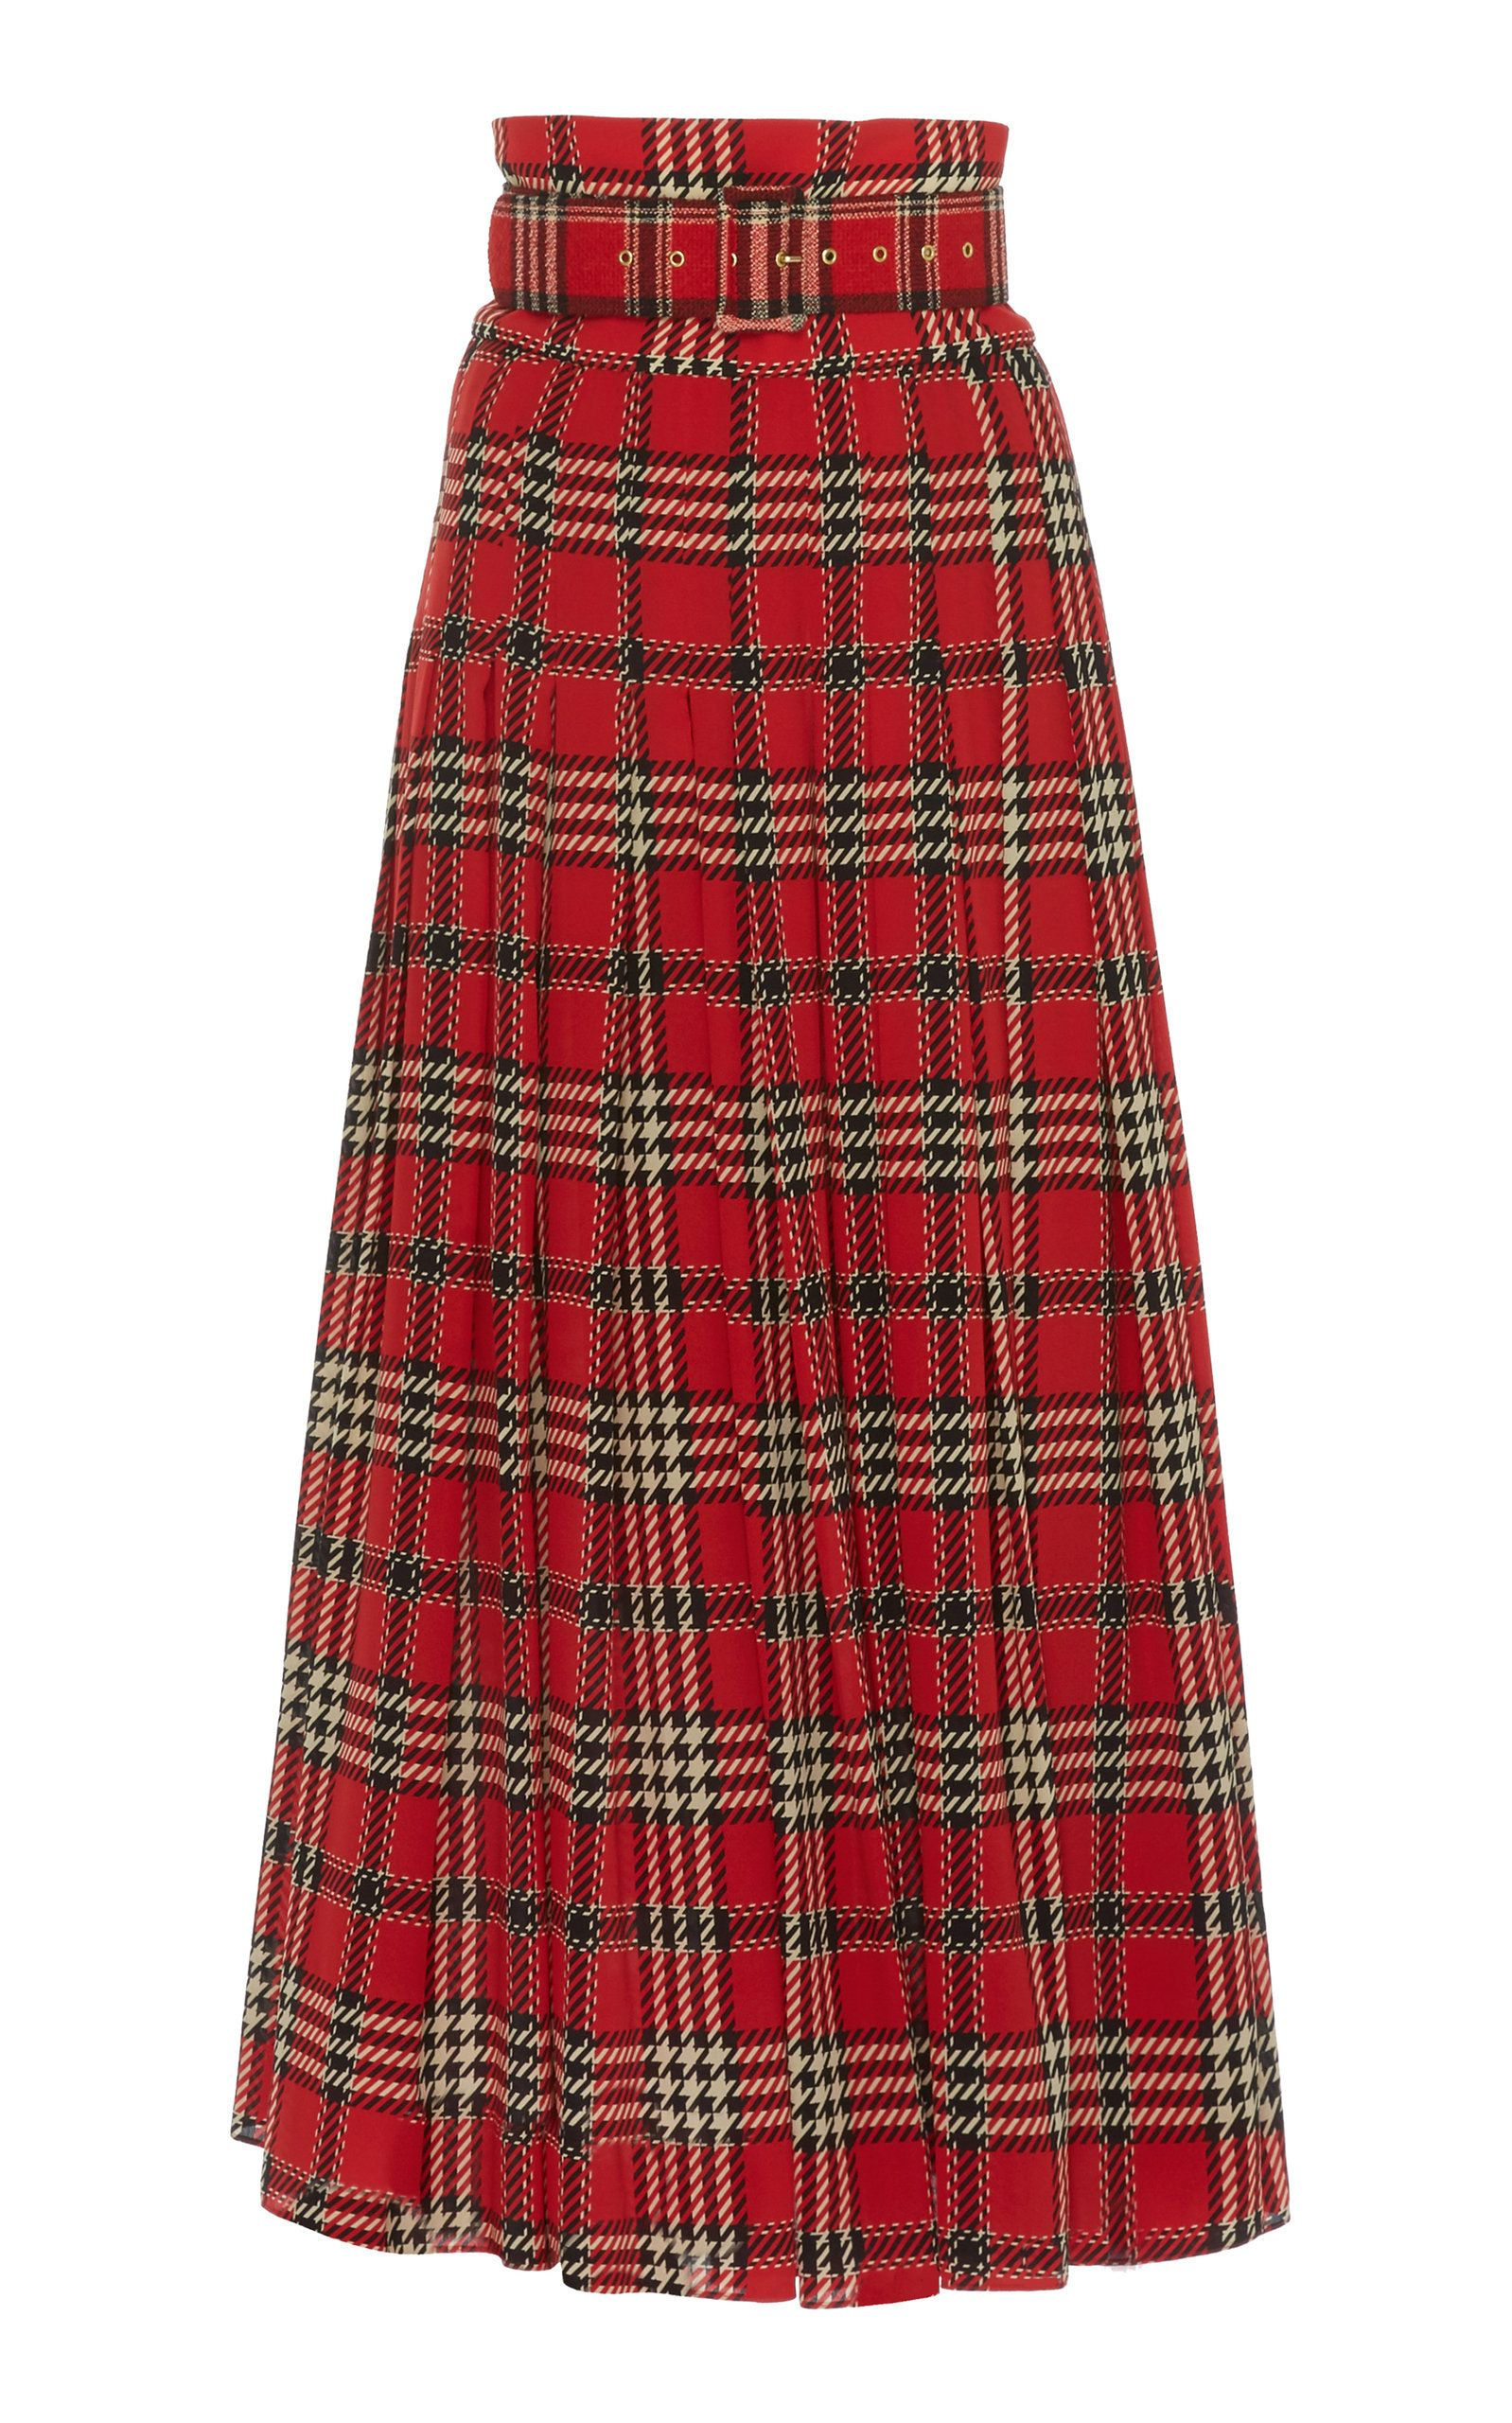 649d2945b9 Richie Skirt by EMILIA WICKSTEAD for Preorder on Moda Operandi ...